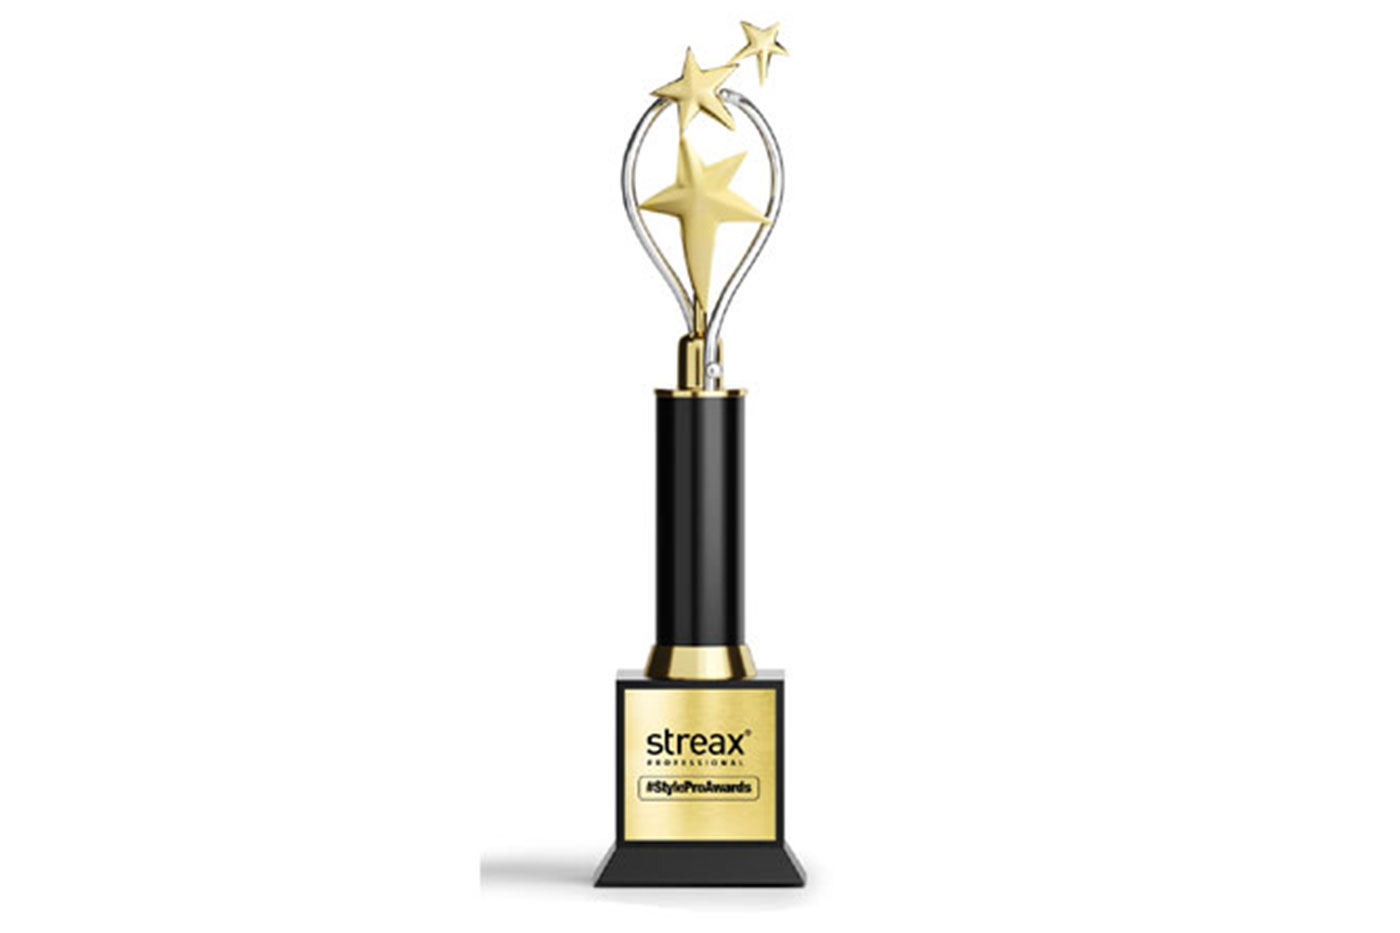 Streax Professional announces results of StyleProAwards